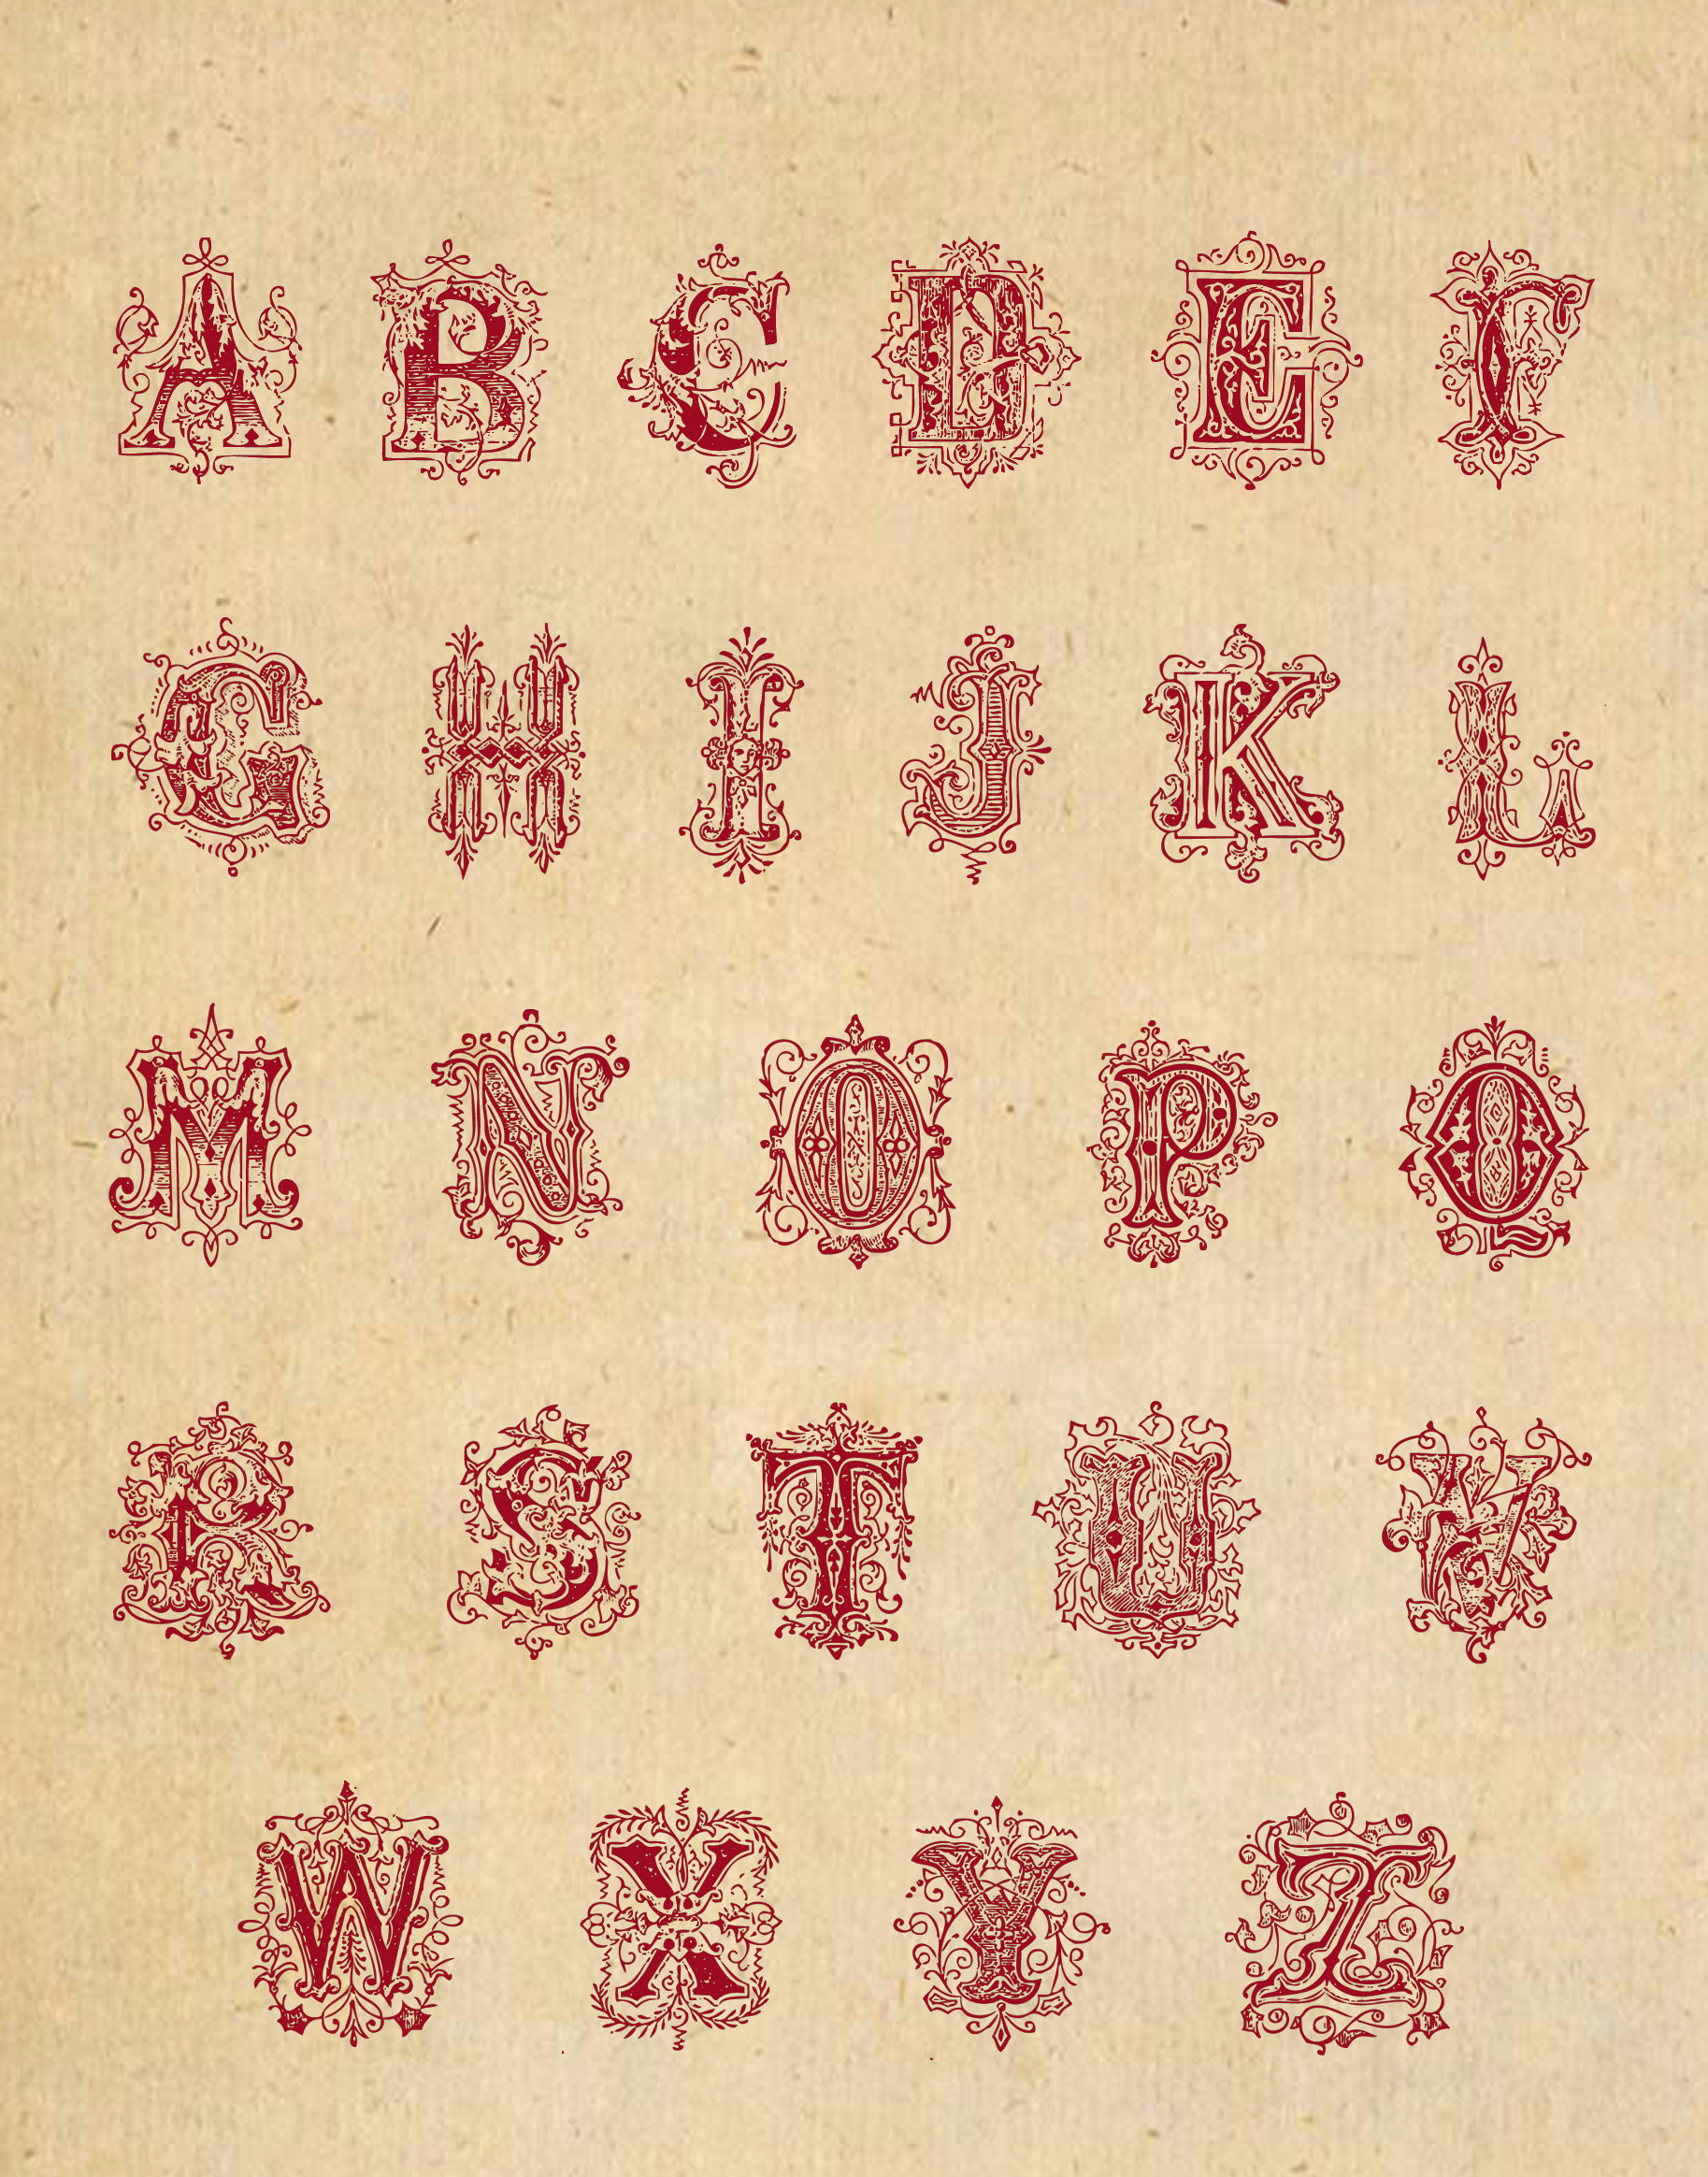 Worksheet Alphabet Printables writing wings of whimsy vintage alphabet vectorized and png